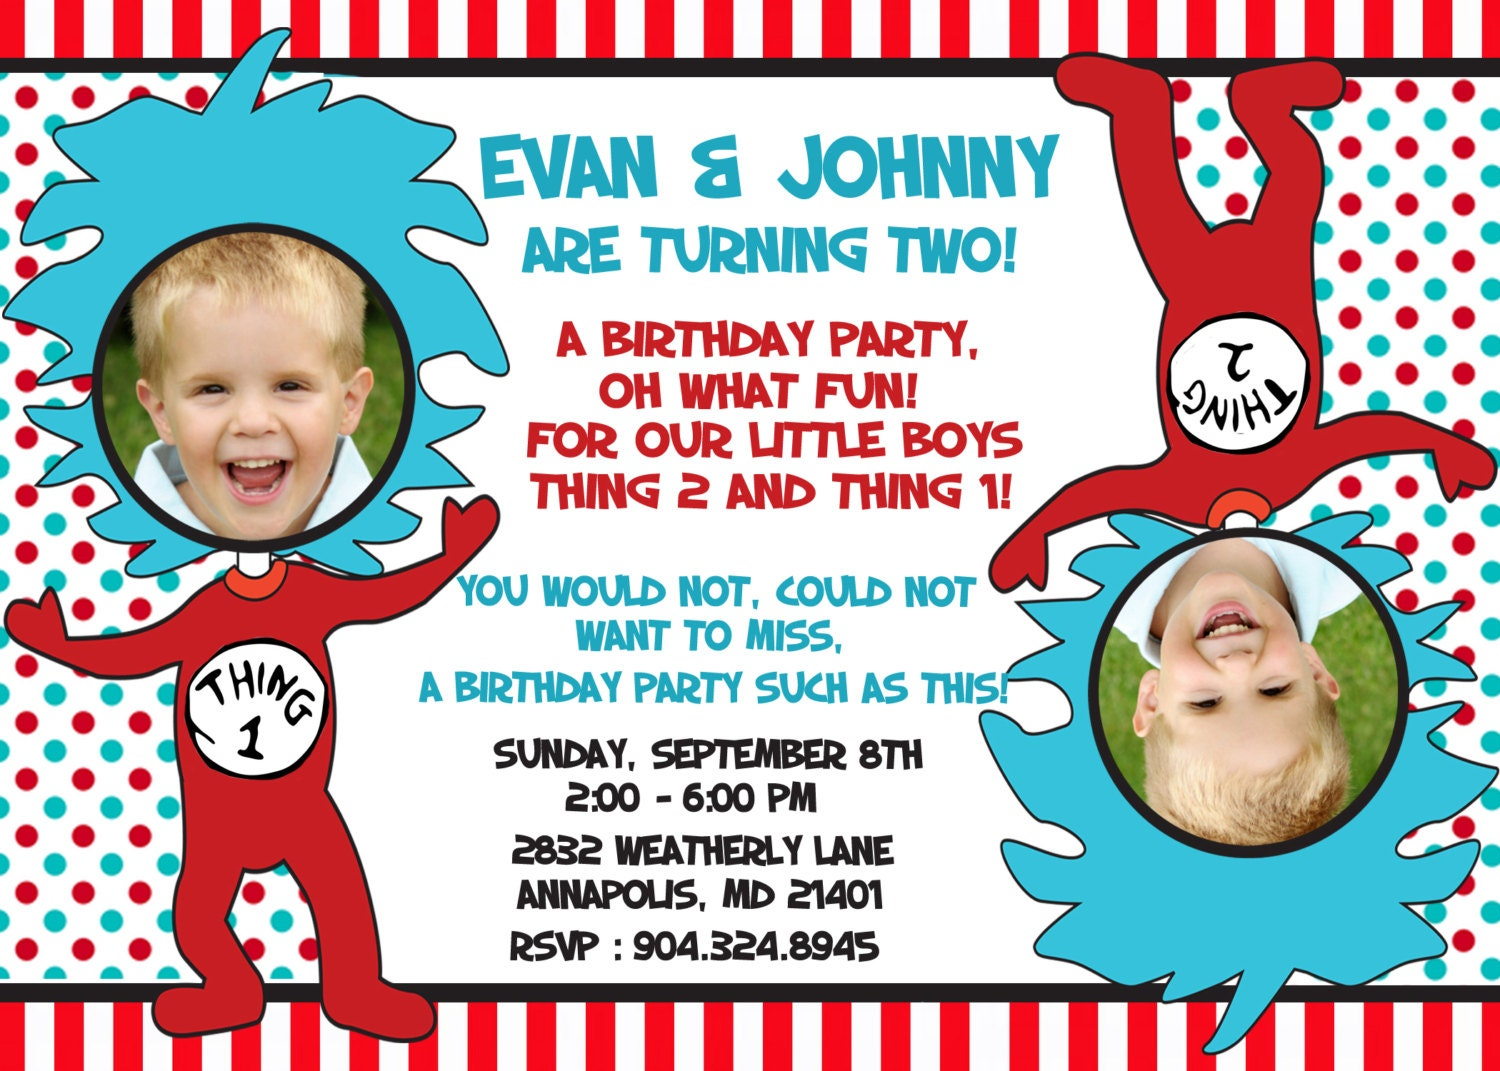 Dr. Seuss Thing 1 Thing 2 Twins Birthday Party Invitation